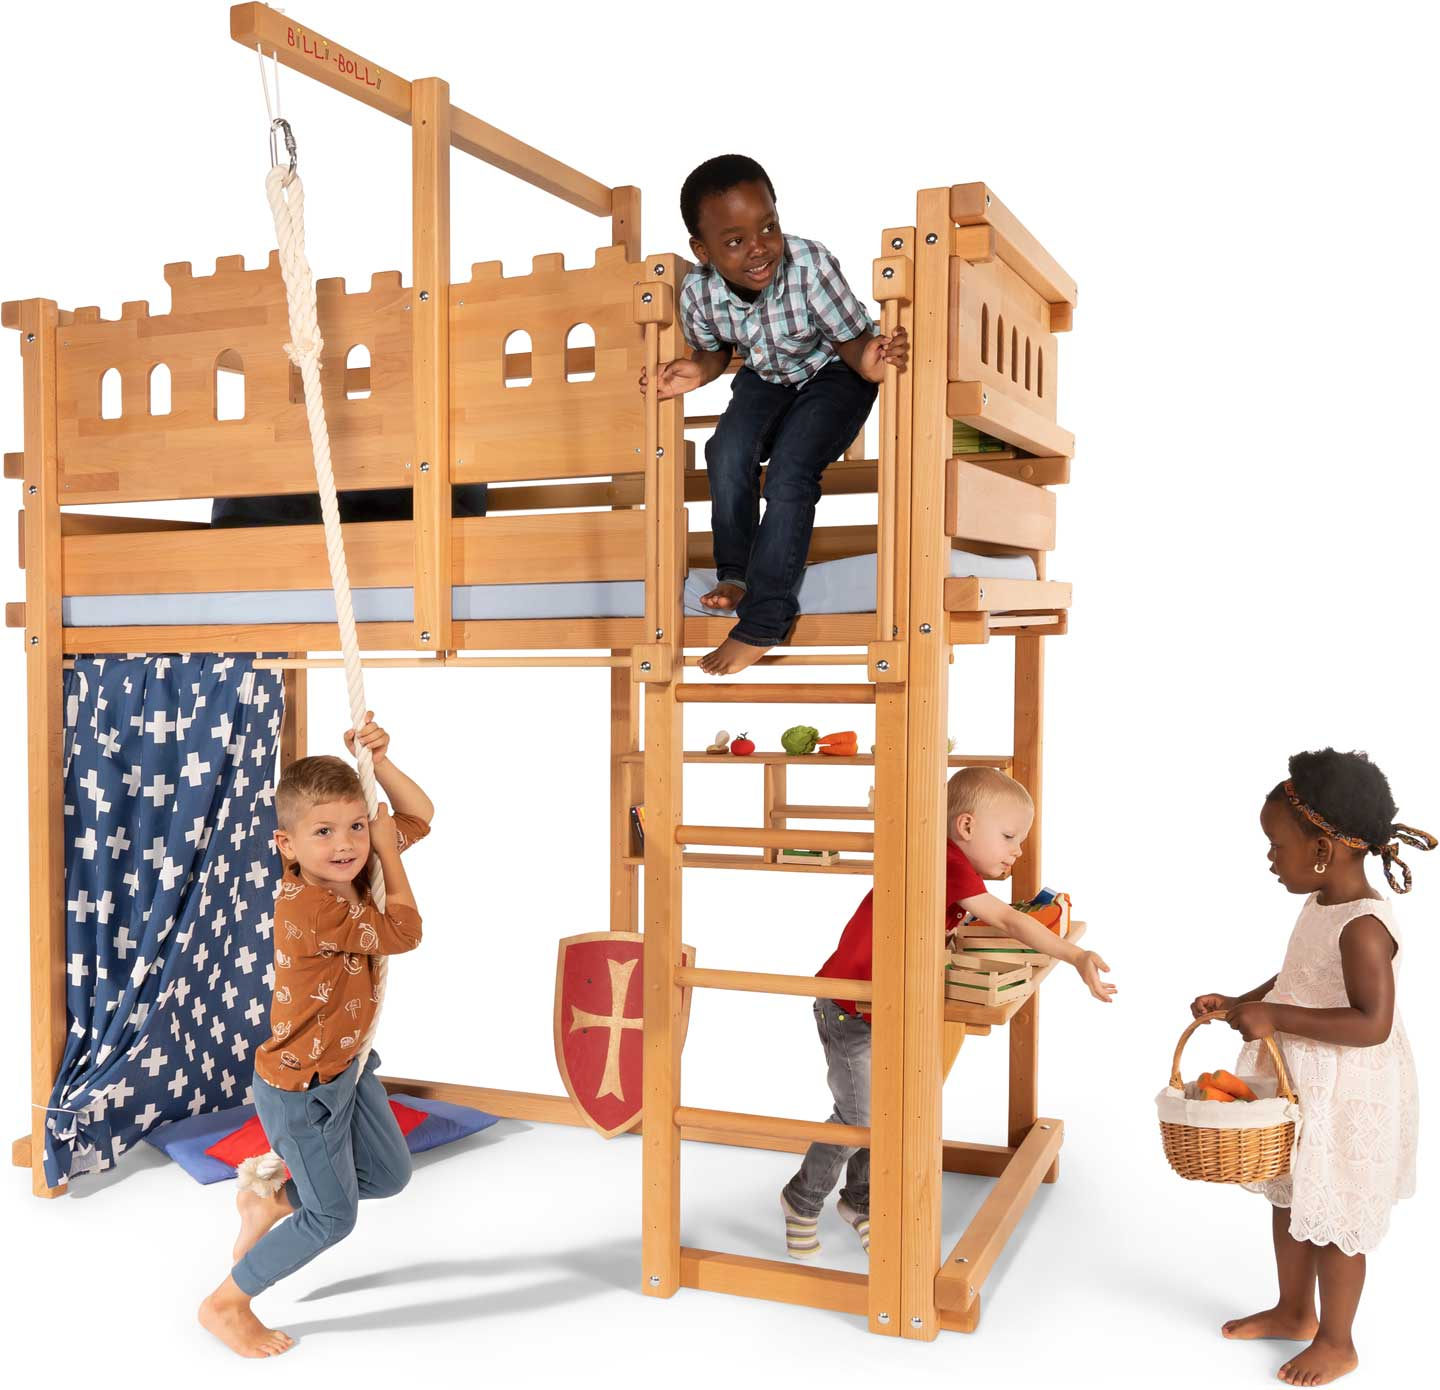 Loft Bed Adjustable by Age. Assembly Height 5